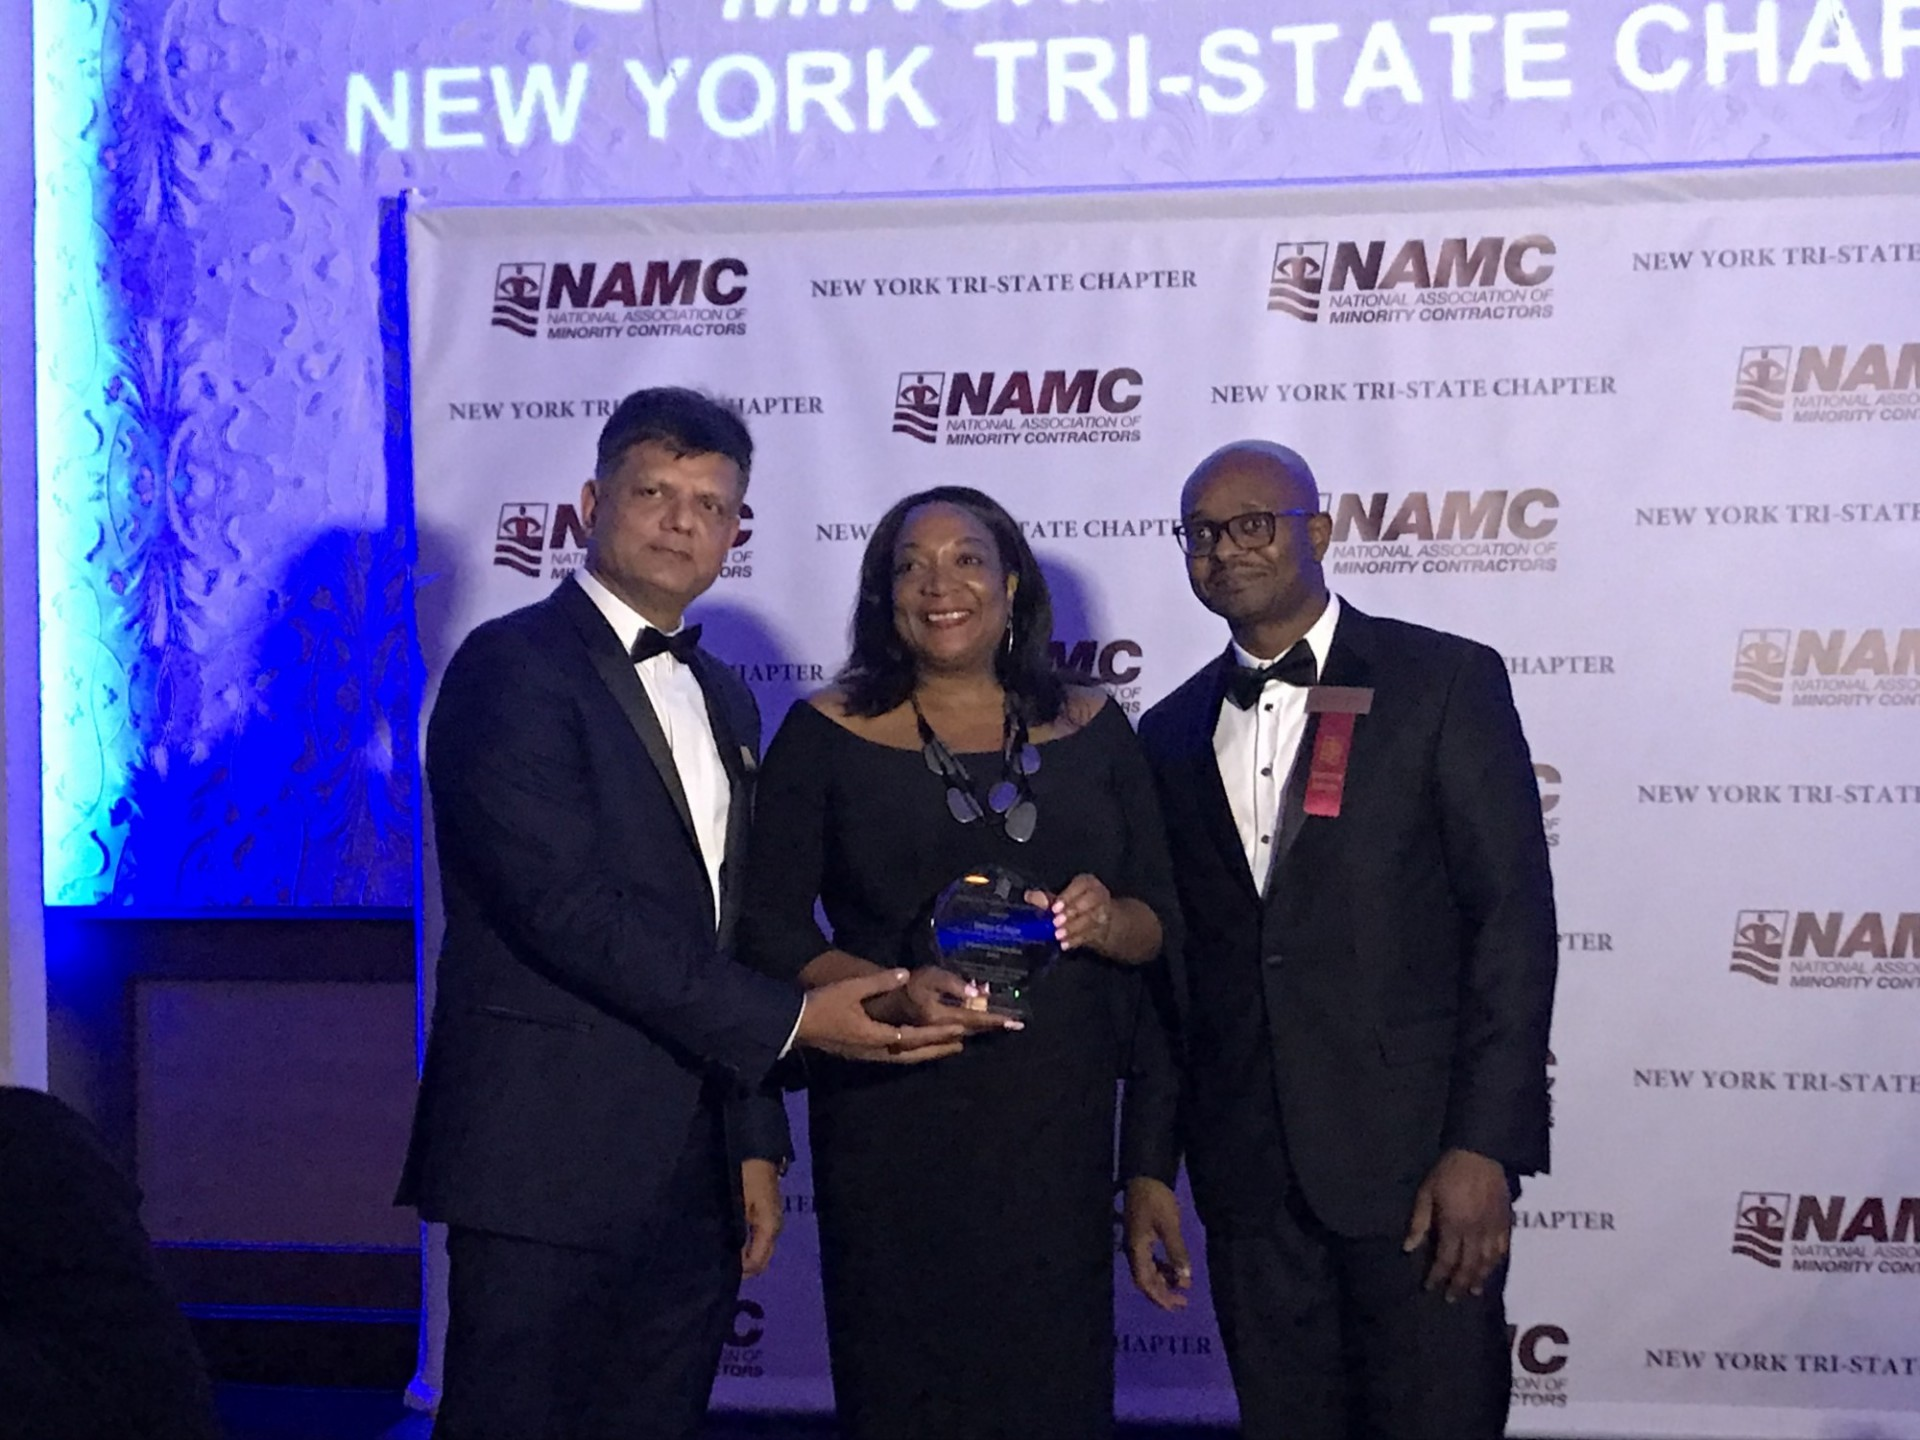 Tanya Pope (center), assistant vice president at Columbia University, receives the New York Tri-State Chapter of the National Association of Minority Contractors 2018 Diversity Champion Award from NAMC-NY President Nayan Parikh (left) and Andrew Fisher, an executive member of the organization.